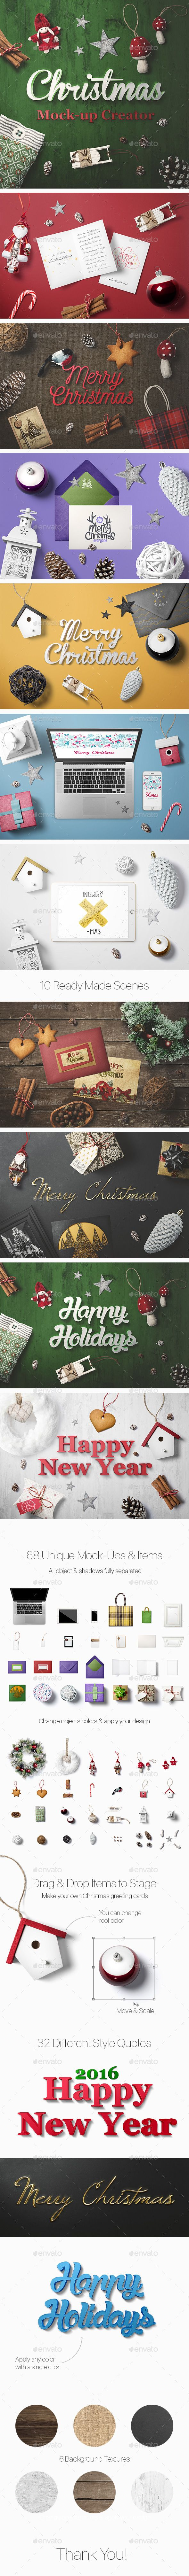 Christmas Mock-Up Creator #design Download: http://graphicriver.net/item/christmas-mockup-creator/13664788?ref=ksioks